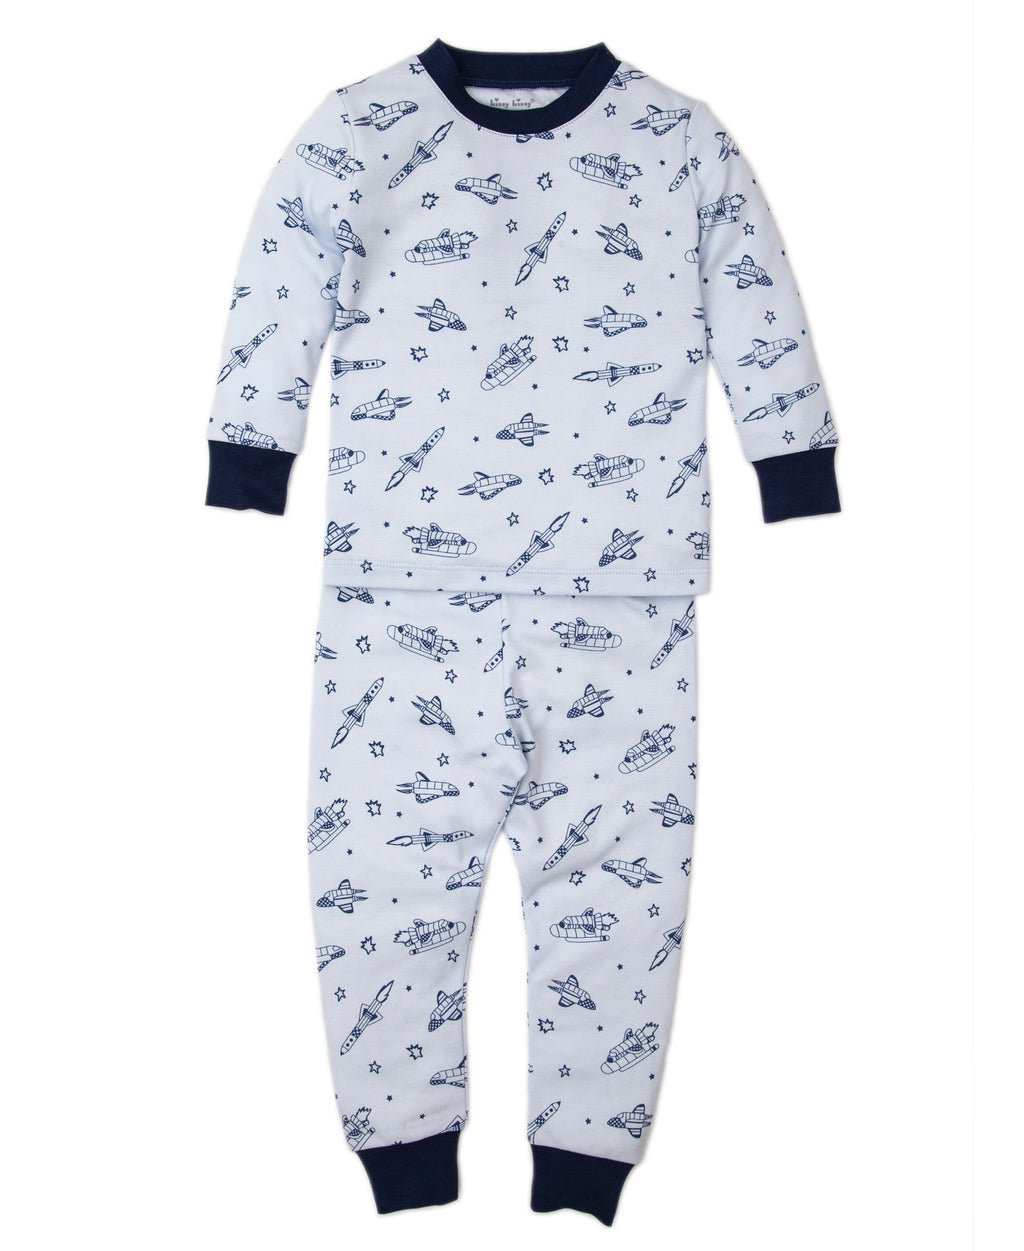 Spaceships Pajama Set